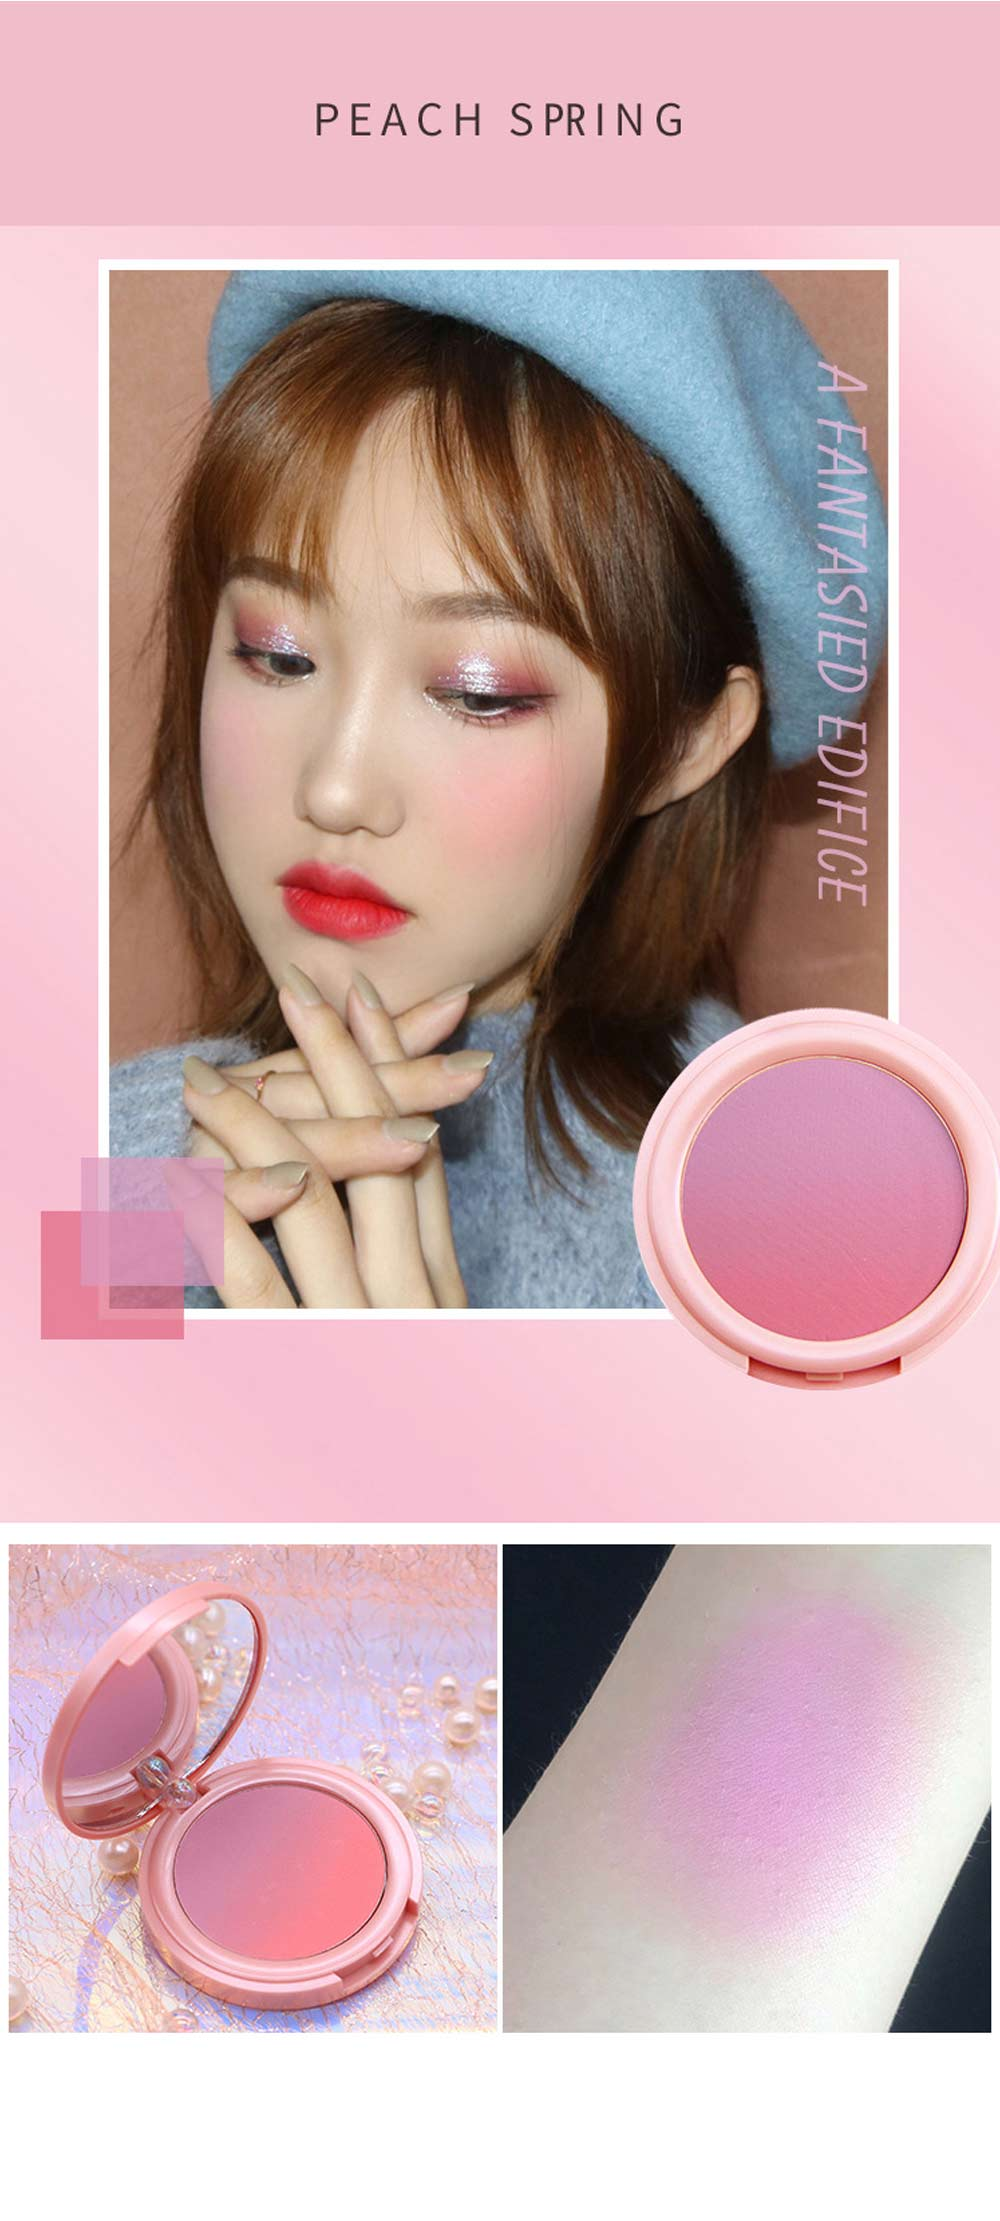 Cheek Powder Blush Professional High Definition Blush Contouring Blusher Makeup Box 5